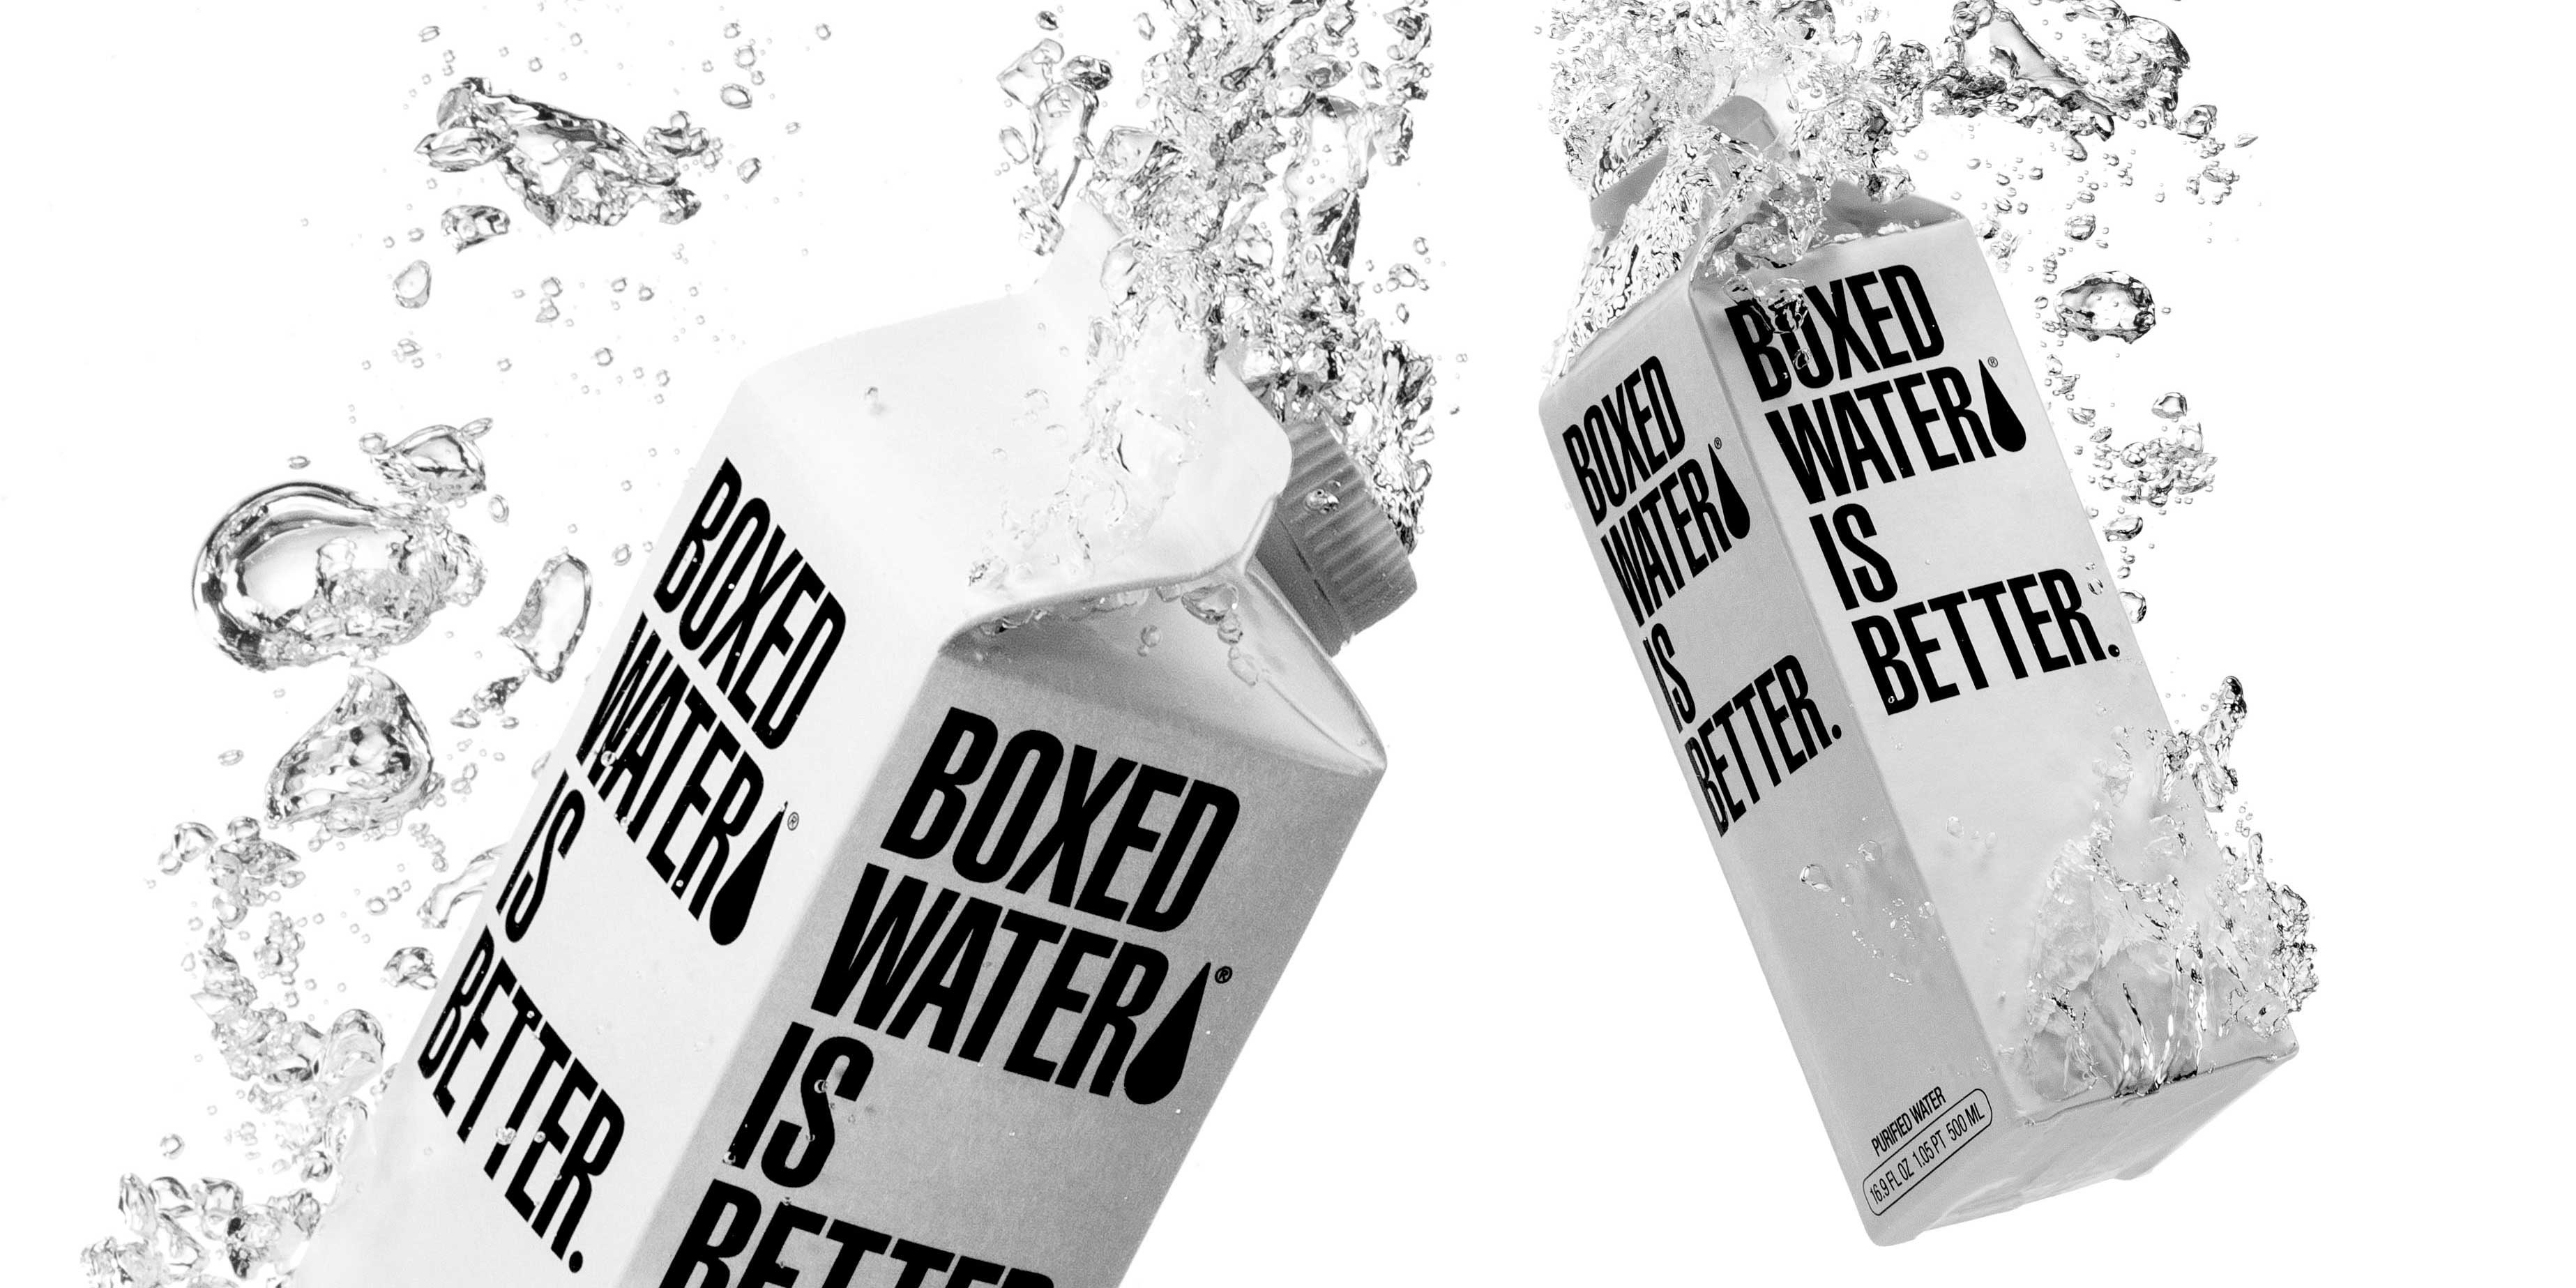 UNE_Boxed-water-©JamesLee-Unsplash